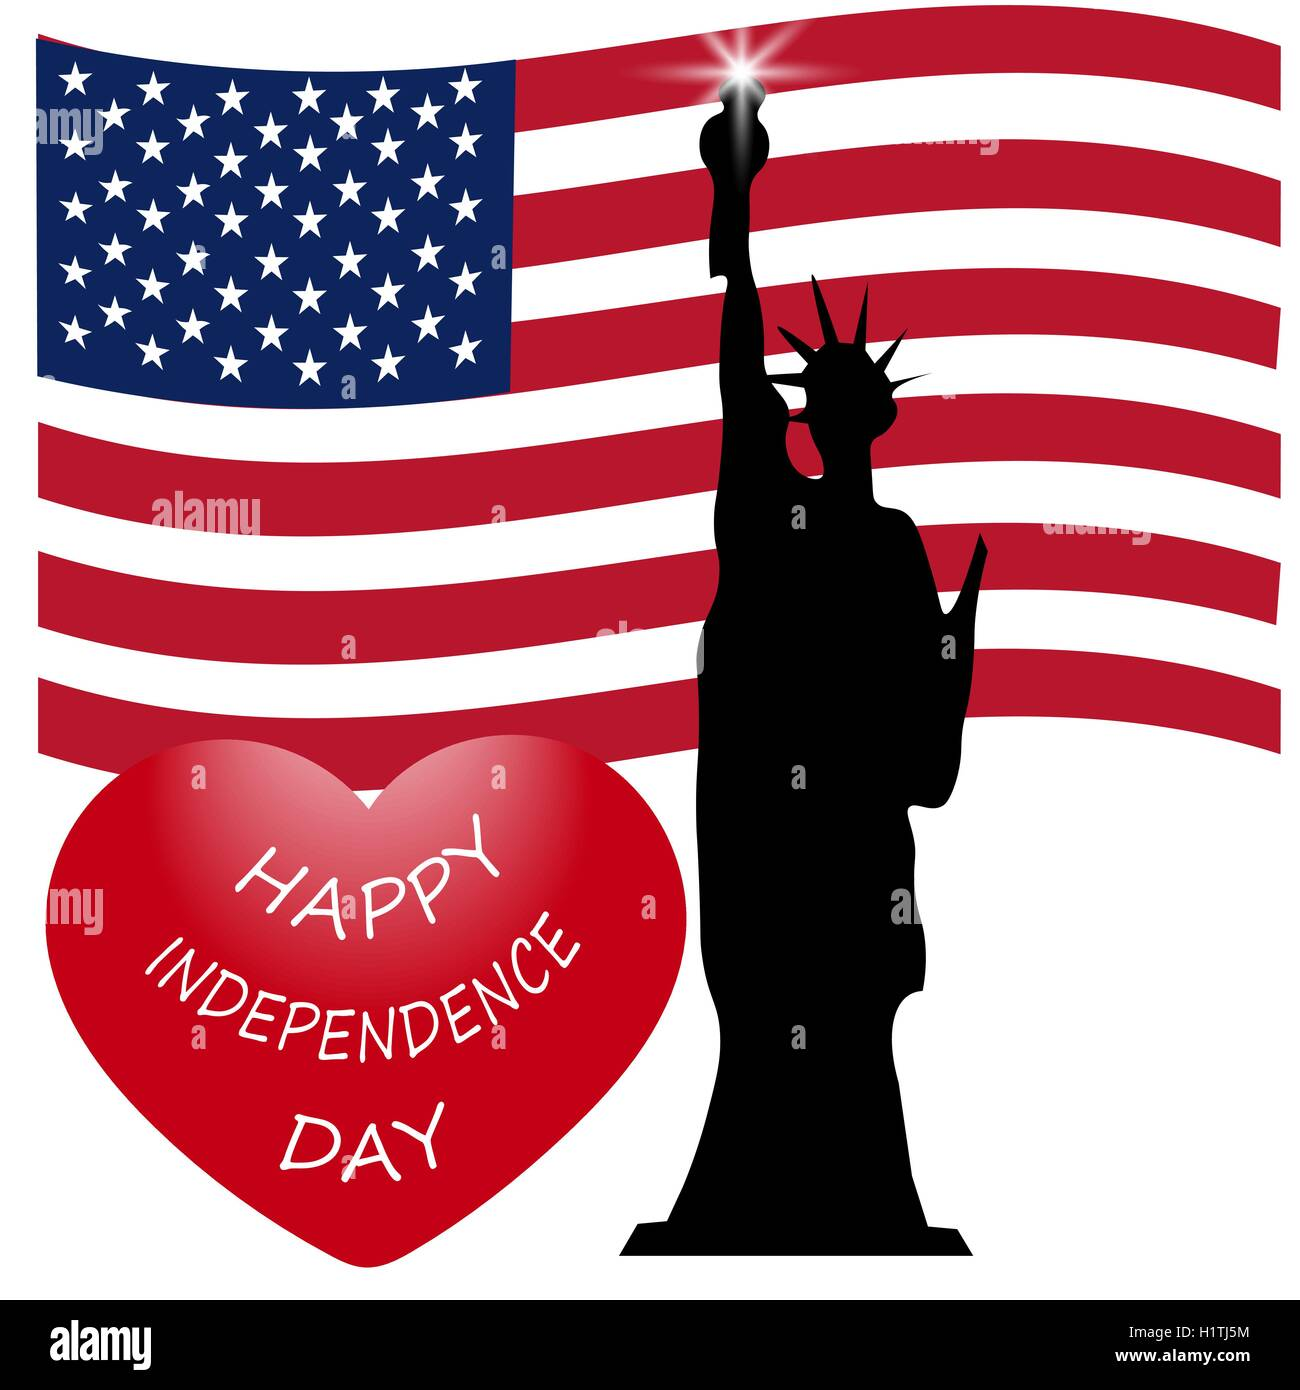 American Independence Day Us Symbols Vector Illustration Stock